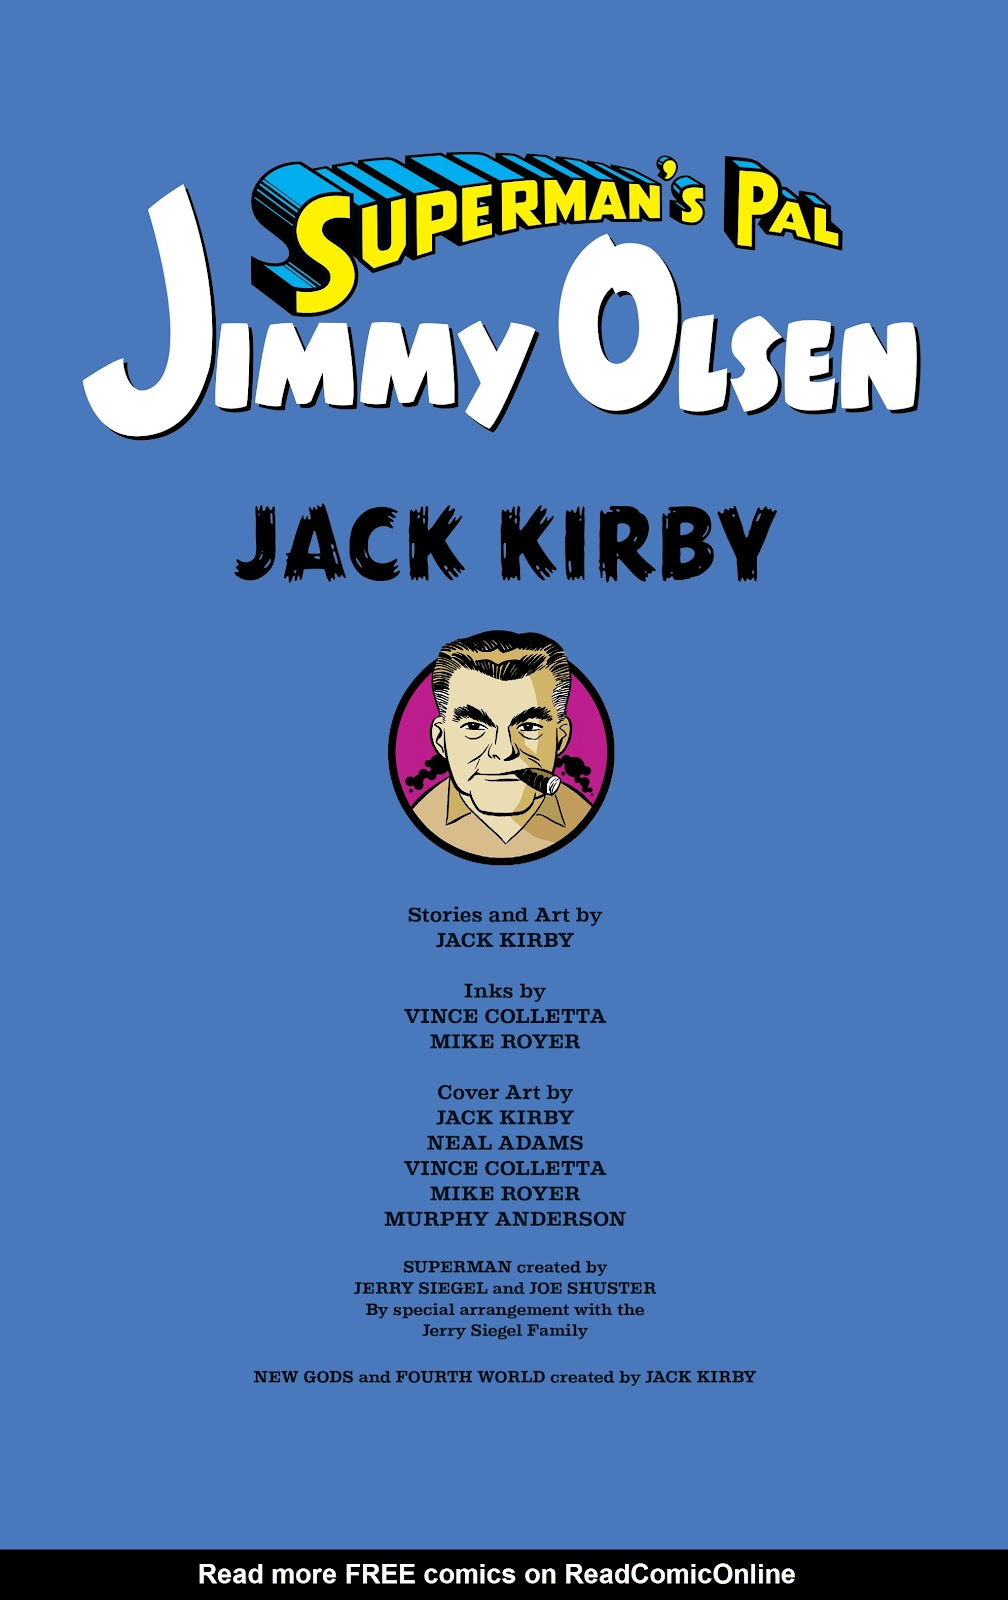 Read online Superman's Pal, Jimmy Olsen by Jack Kirby comic -  Issue # TPB (Part 1) - 4